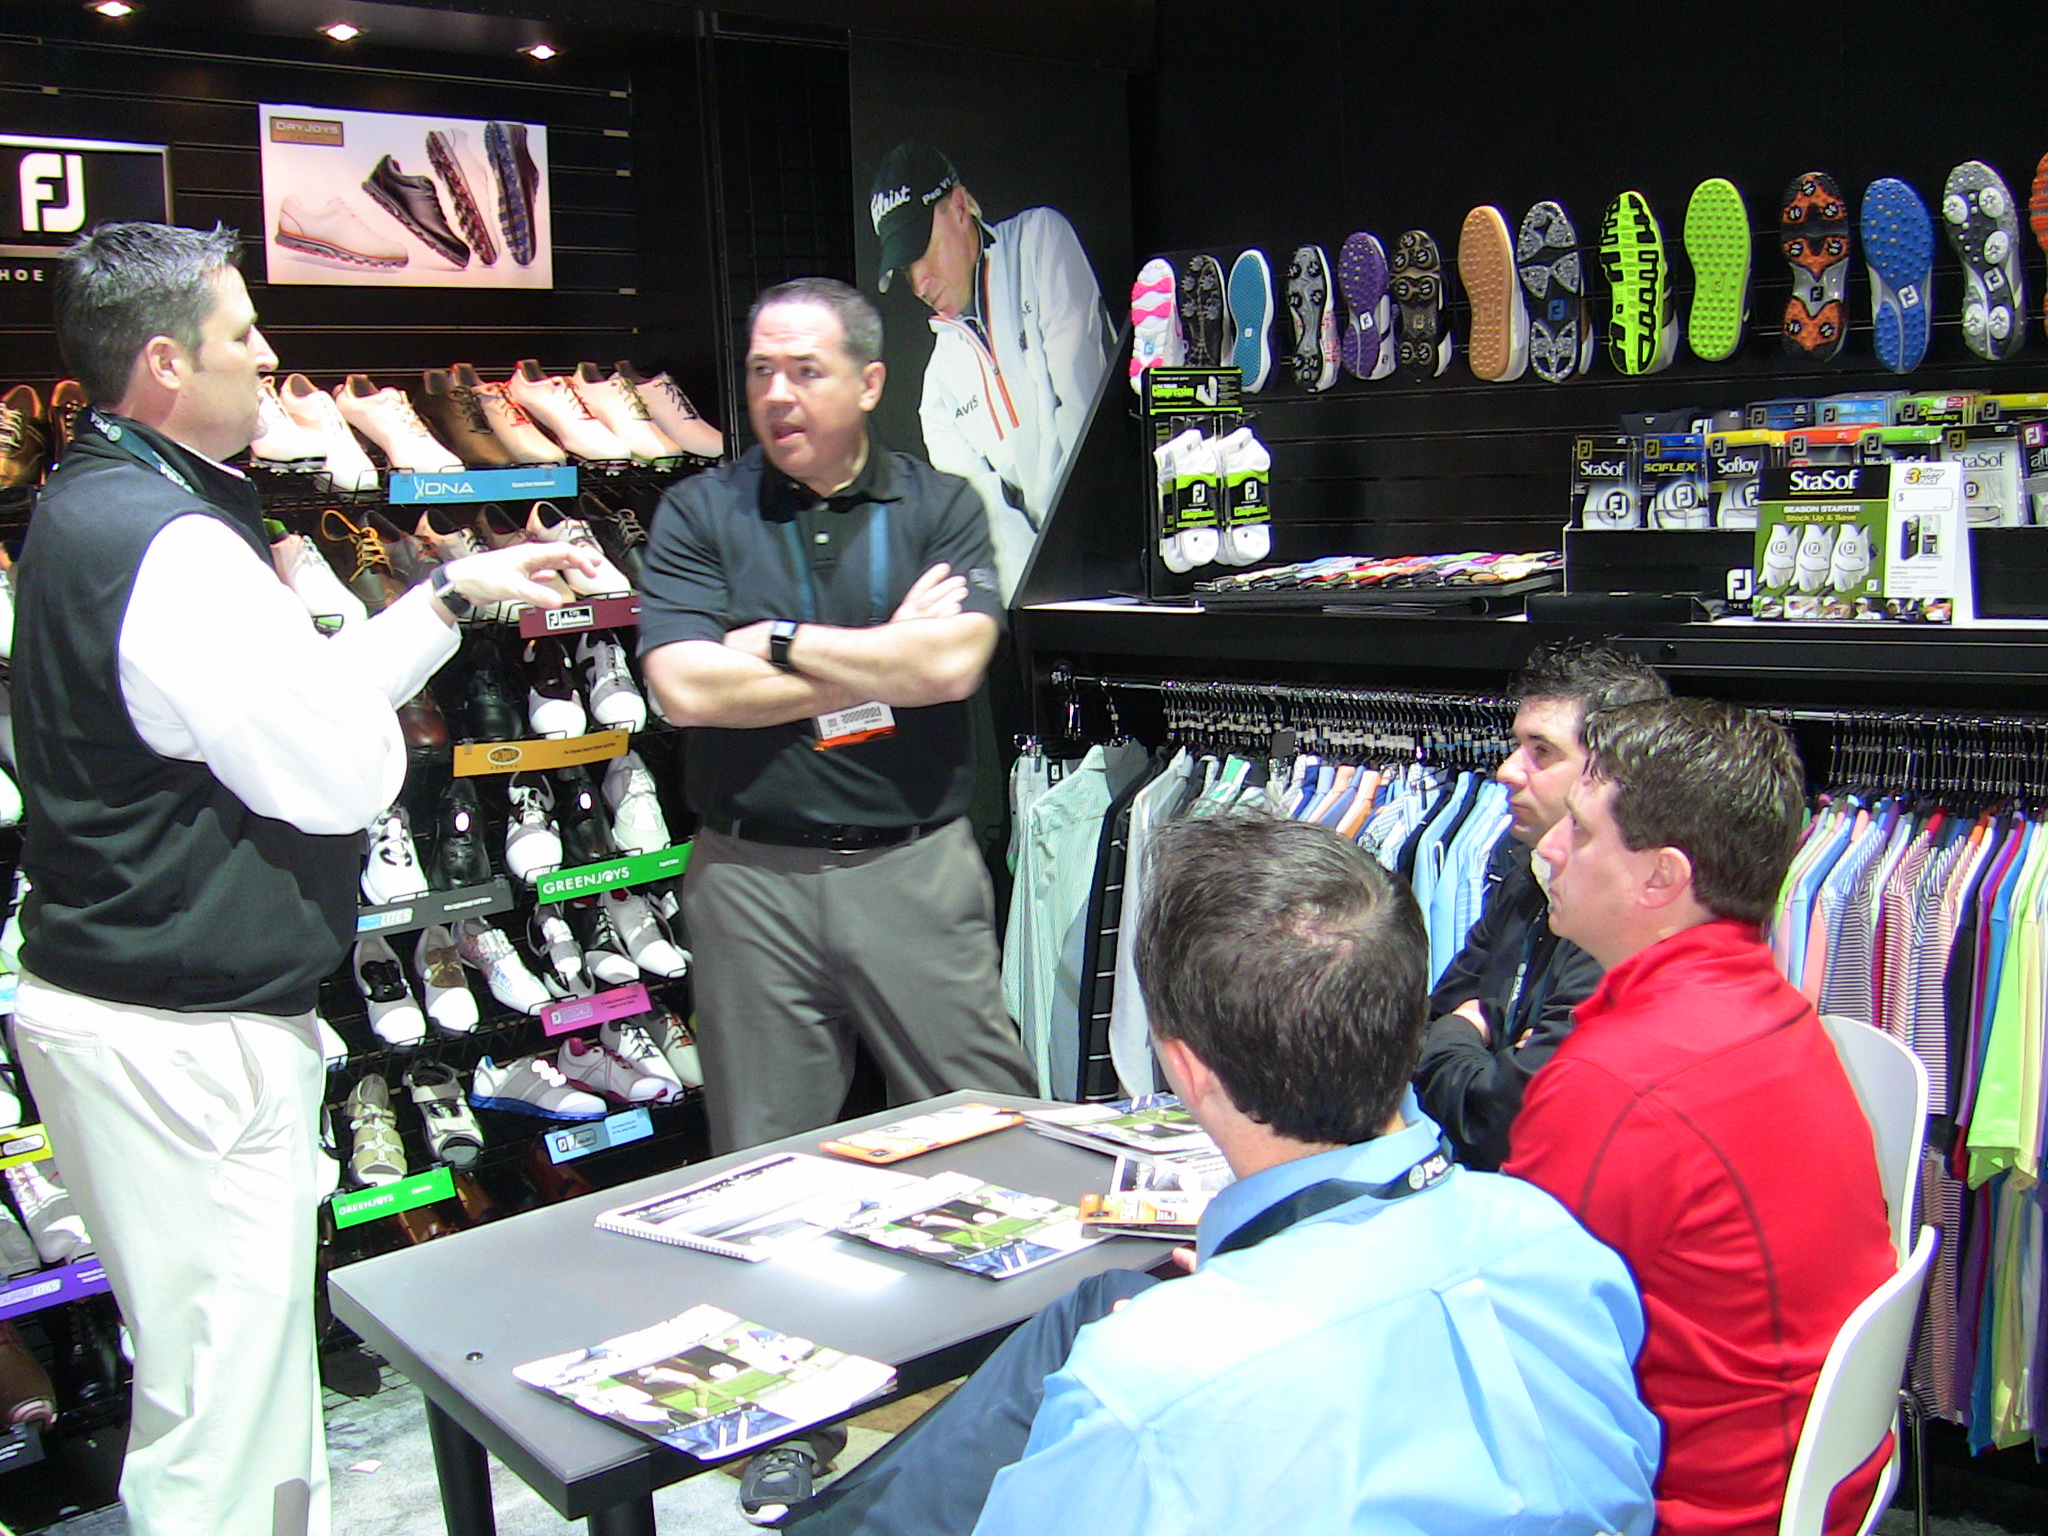 Tom Cox (center), president and CEO of Golfballs.com, and members of the Golfballs.com staff meet with a FootJoy representative during the PGA Merchandise Show, looking at the newest line of FootJoy's golf apparel.